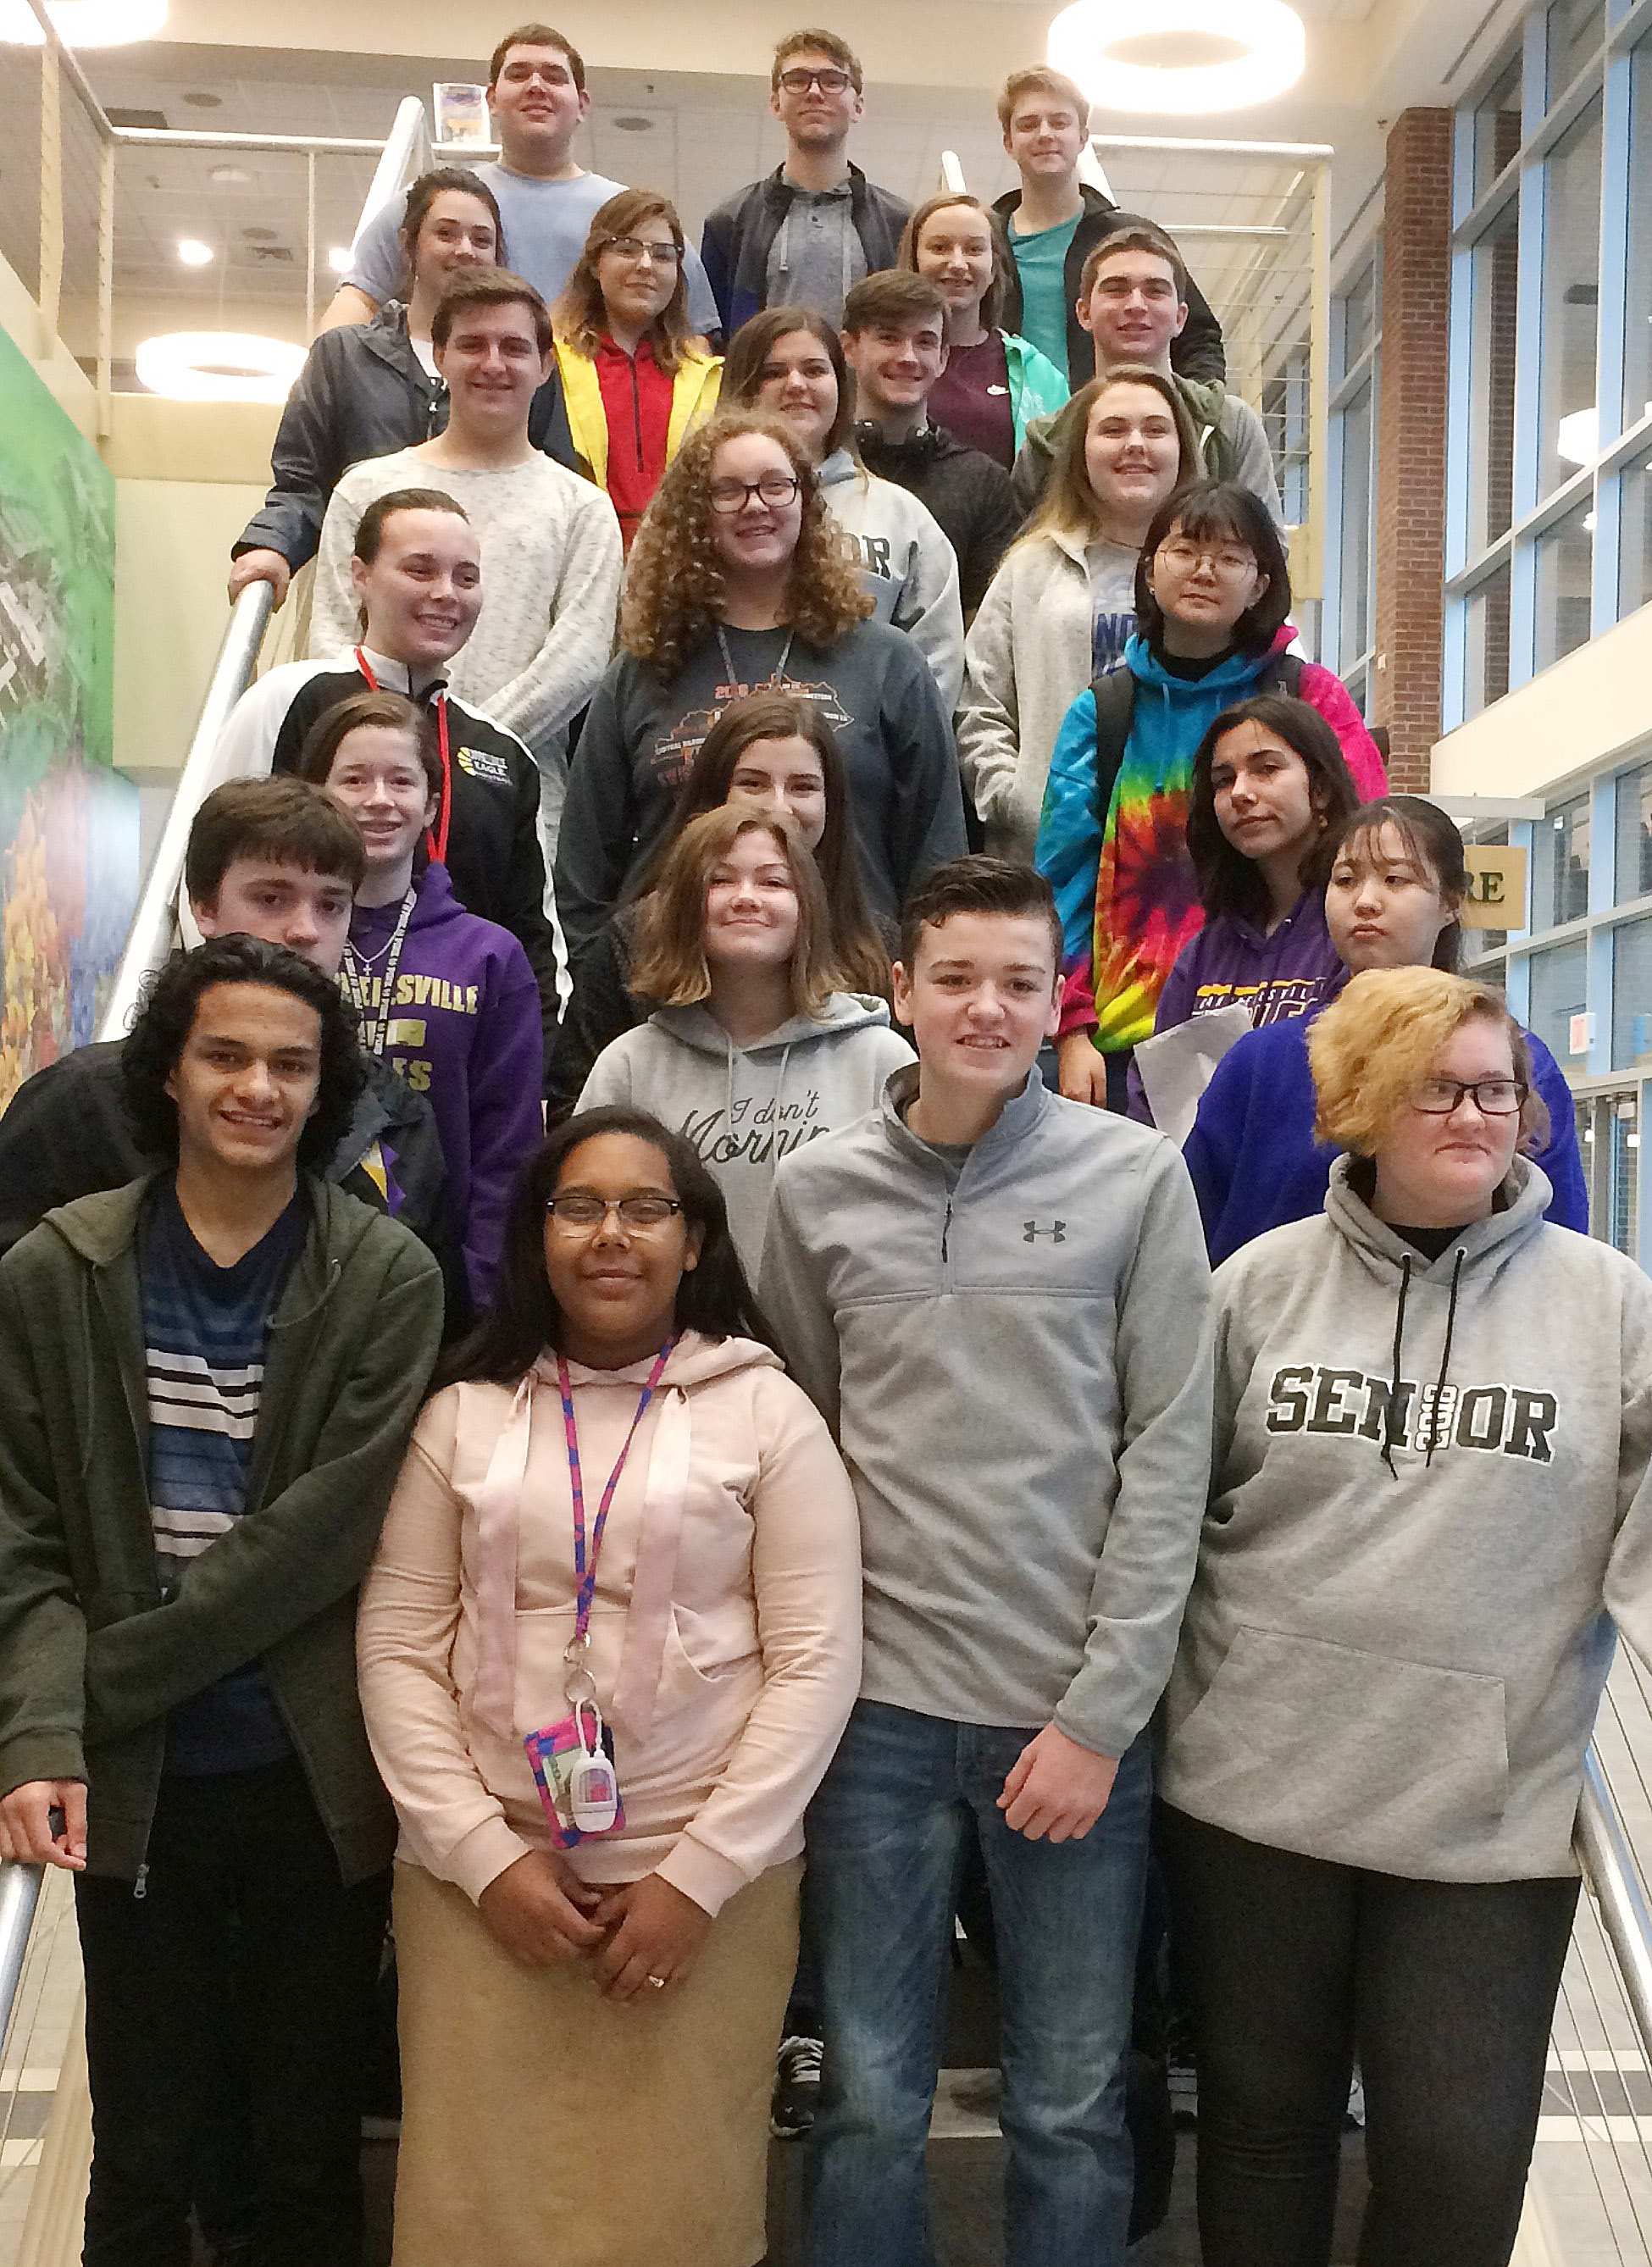 Campbellsville High School students recently took a tour of the Oak Ridge National Laboratory in Tennessee. From left, front, are sophomores Ben Arachi, Zaria Cowan and Gavin Johnson and senior Jasmine Cox. Second row, sophomores Grant Rinehart and Shelby Smith and senior Sydney Jeong. Third row, sophomores Gracyne Hash and Alli Wilson and junior Celeste Hassman. Fourth row, sophomores Katelyn Miller and Emily Rodgers and senior Hye Su Cho. Fifth row, seniors Austin Fitzgerald, Vivian Brown and Haley Fitch. Sixth row, seniors Missy Vanorder, Sara Farmer, Jackson Hunt, Madison Dial and Cass Kidwell. Back, seniors Ryan Wiedewitsch, Christan Berry and Alex Doss.